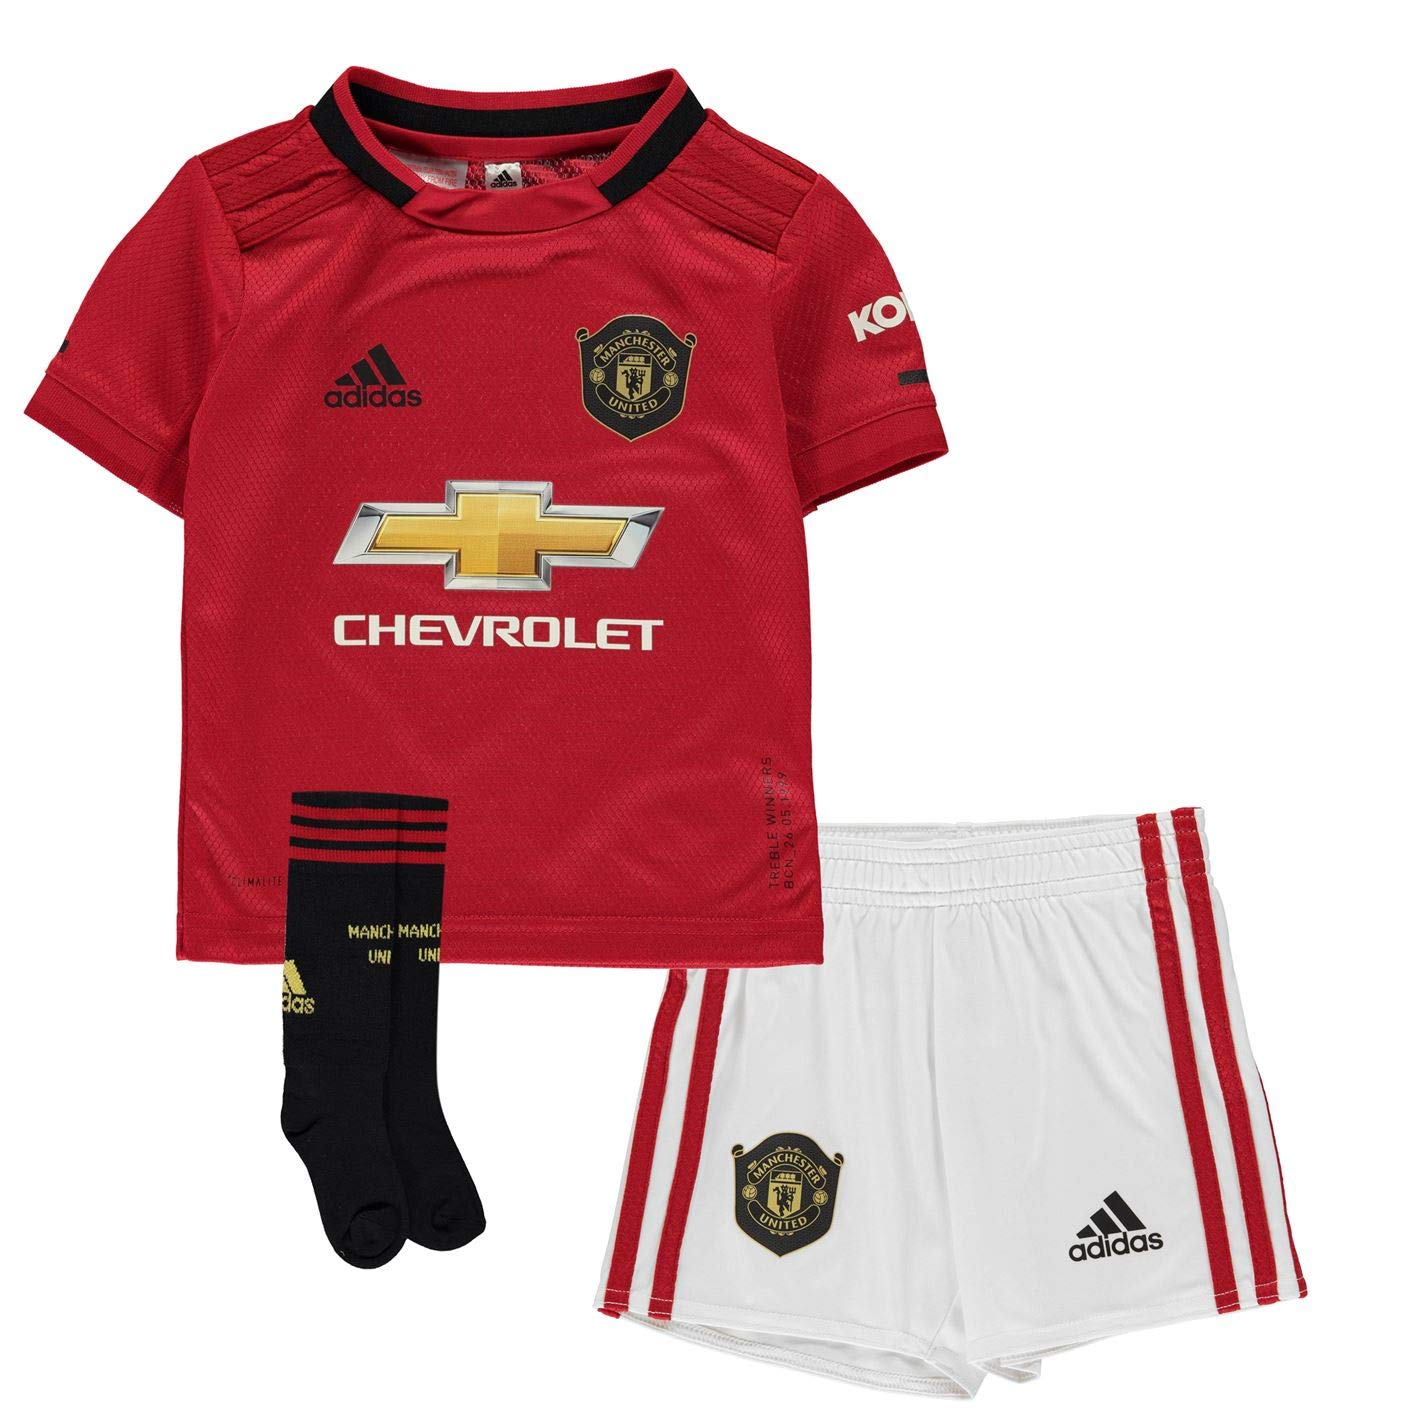 watch ee0ae 0ede1 Amazon.com: adidas Manchester United FC Official 2019/20 ...